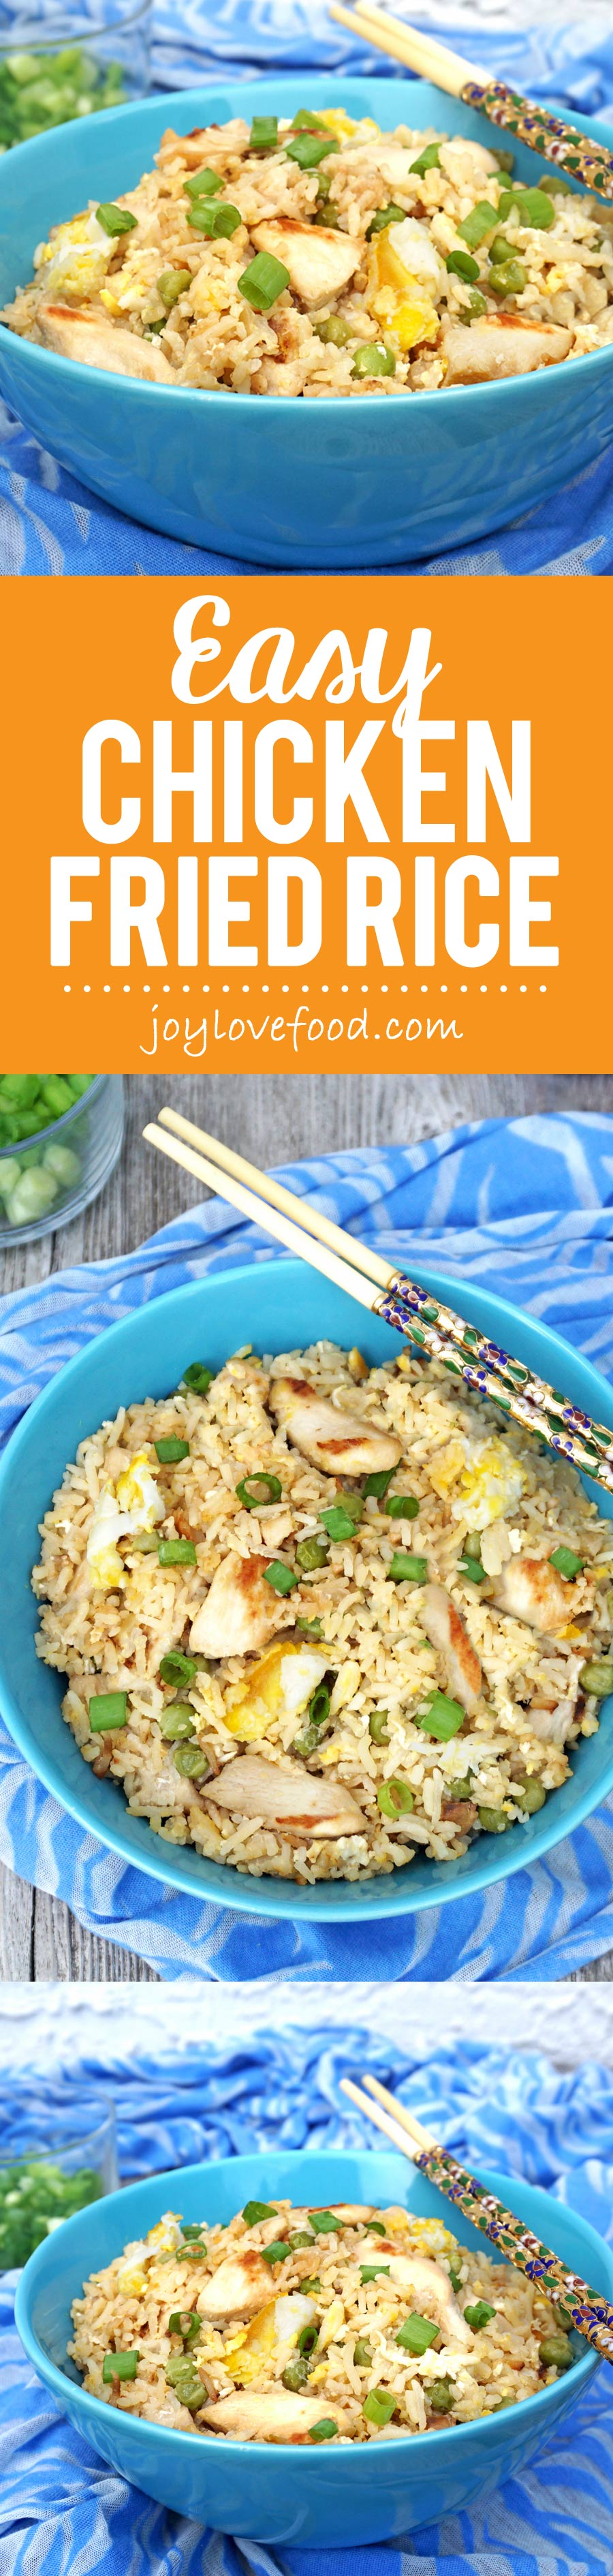 how to cook fried rice with chicken